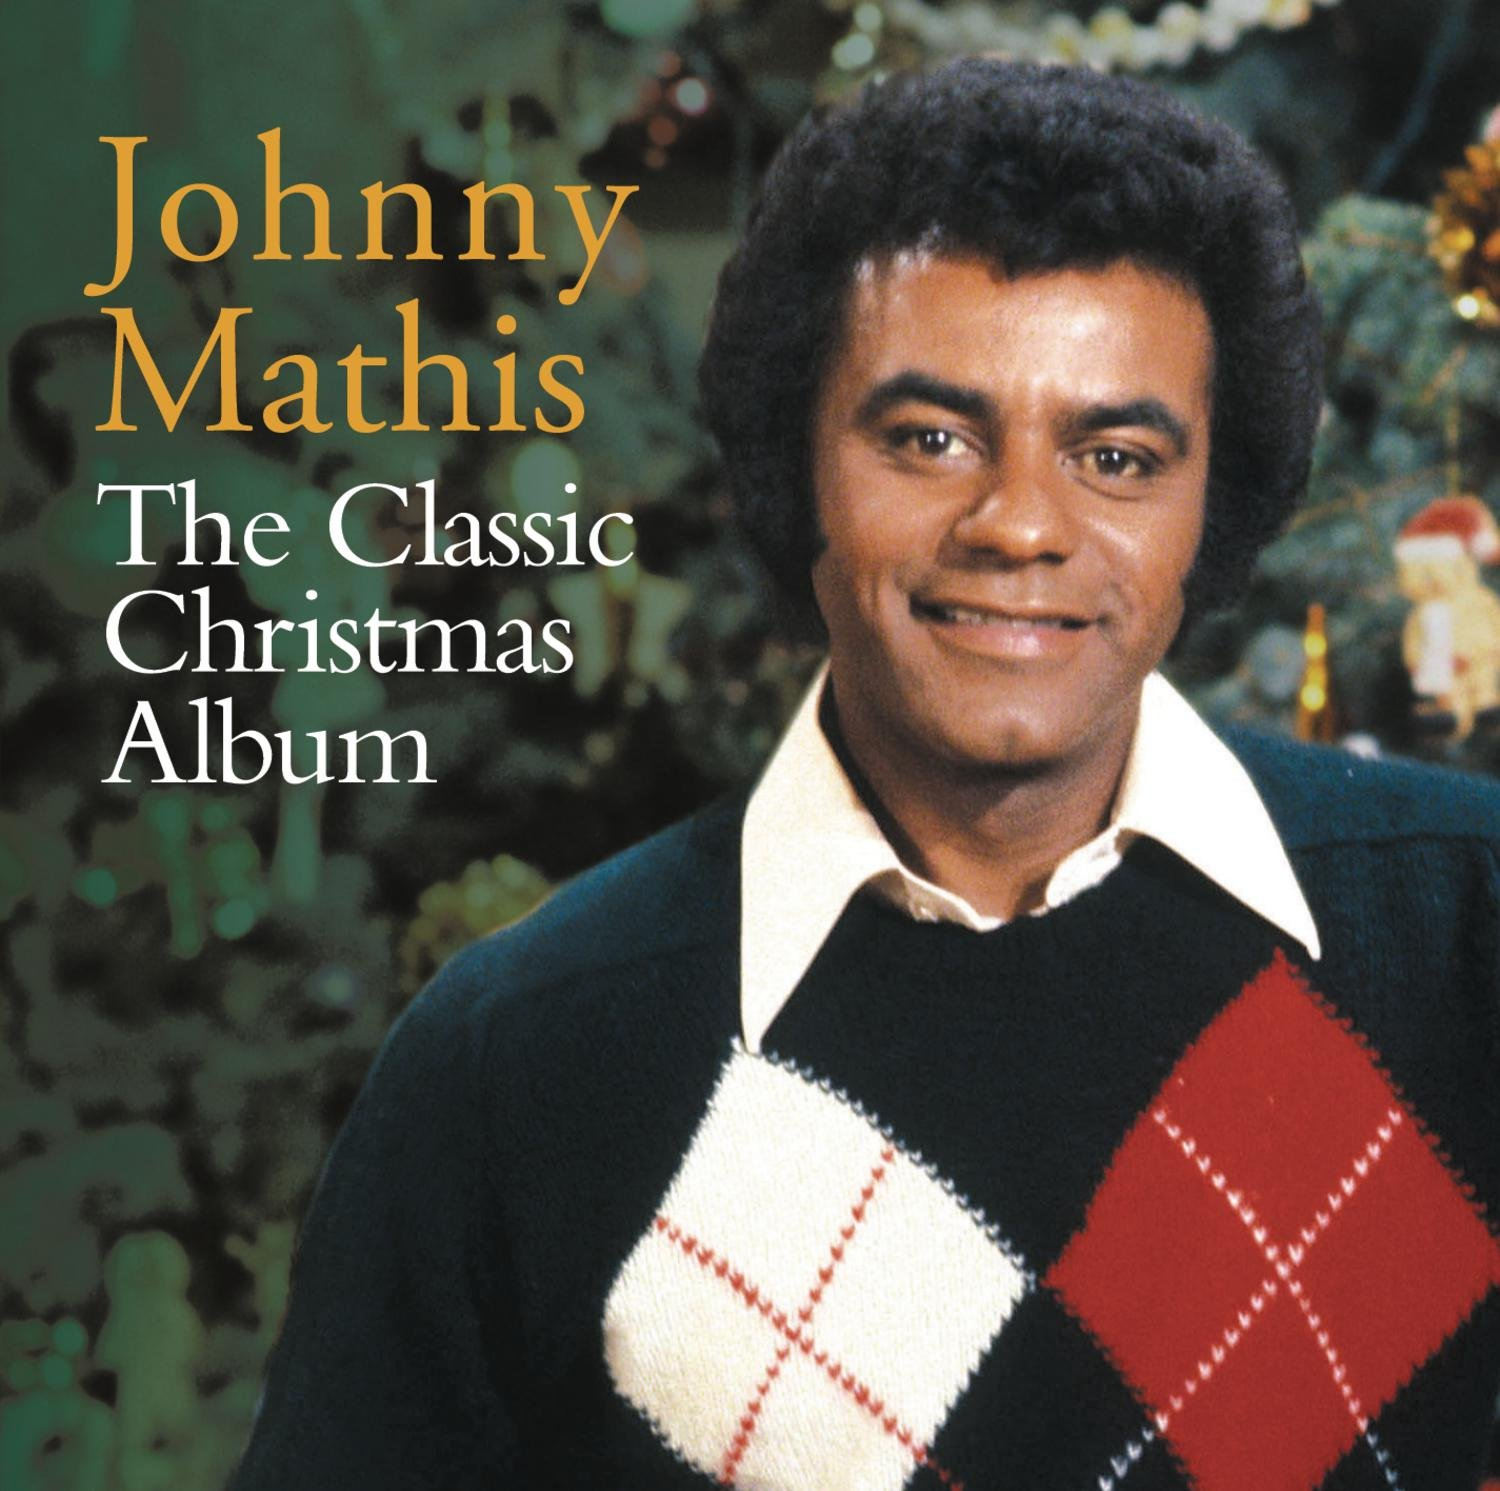 Johnny Mathis - The Classic Christmas Album - Amazon.com Music